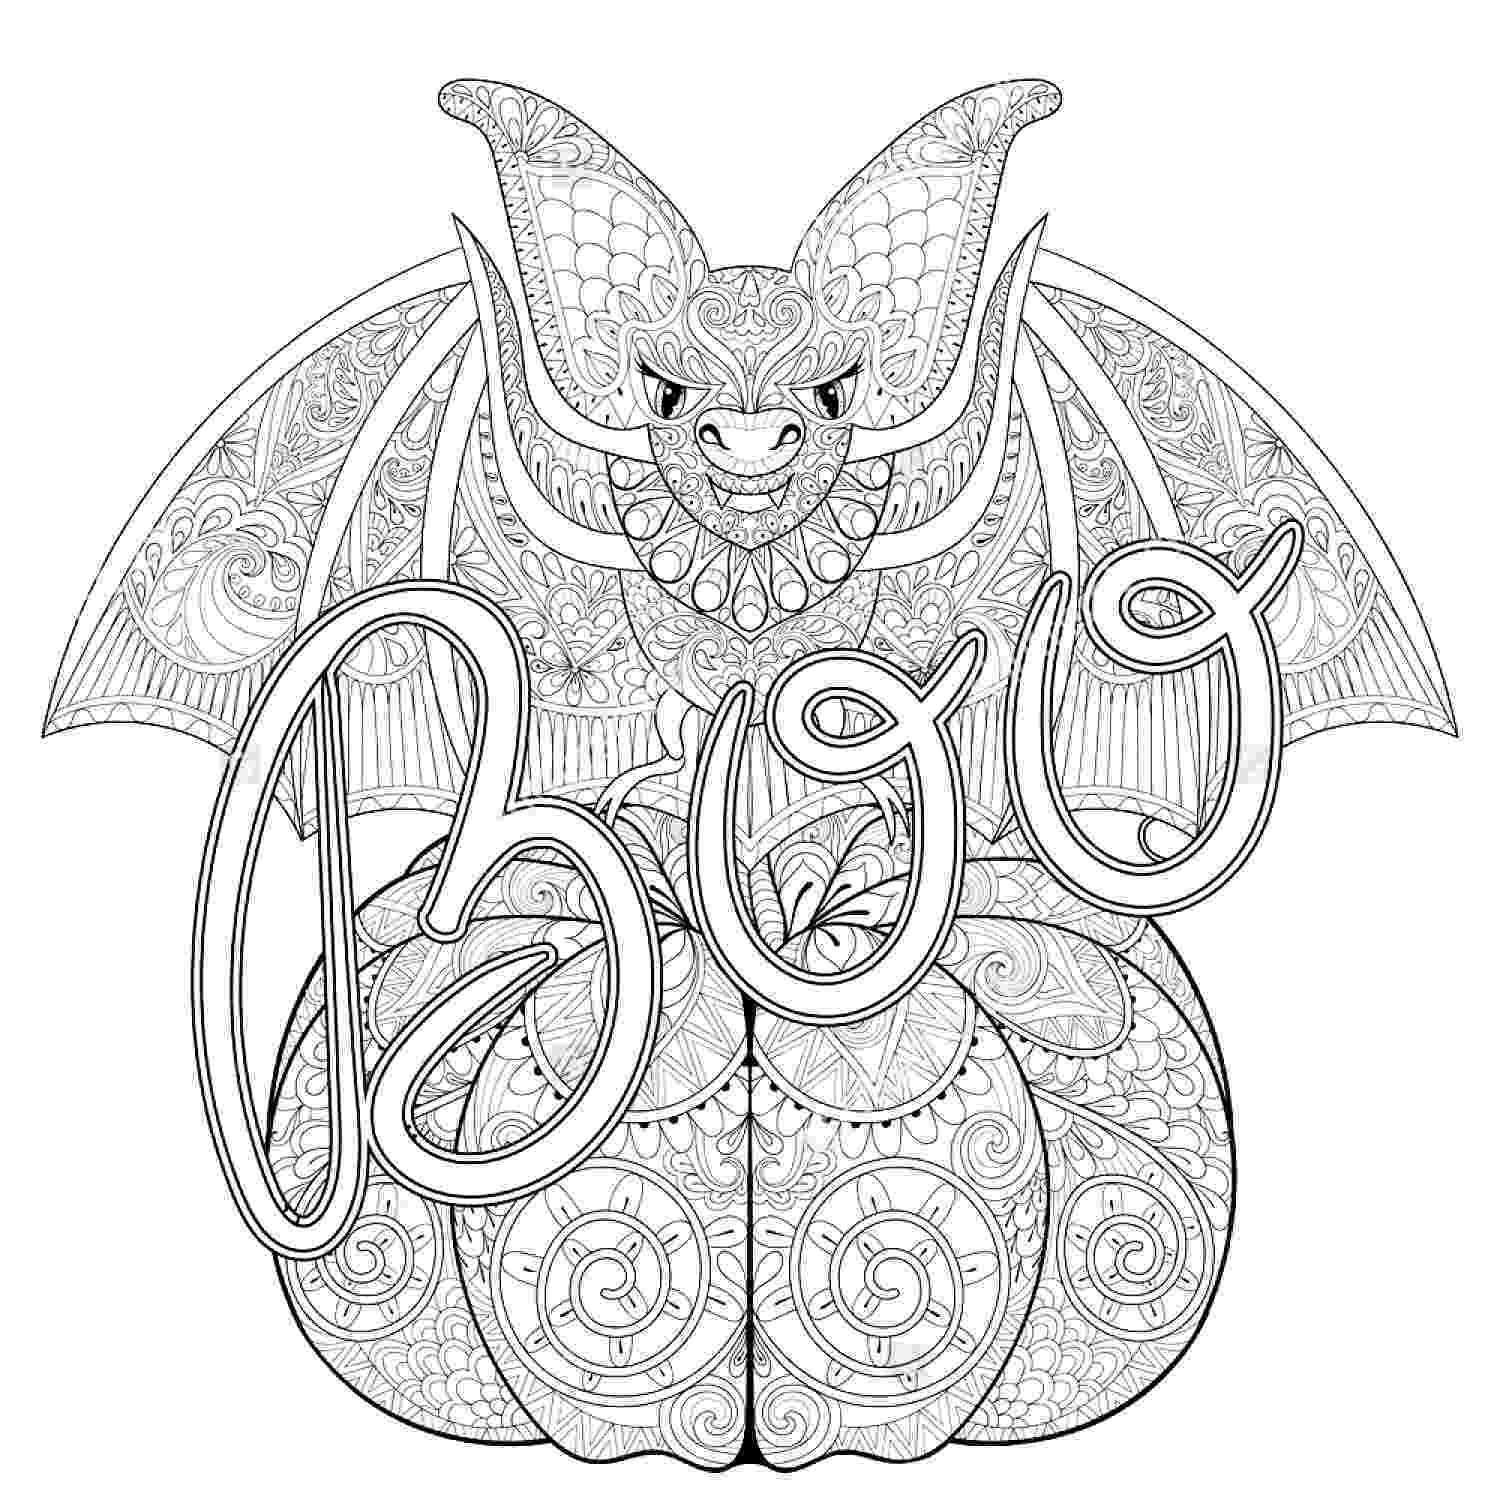 coloring pages for adults halloween halloween zentangle bat halloween adult coloring pages for coloring halloween pages adults